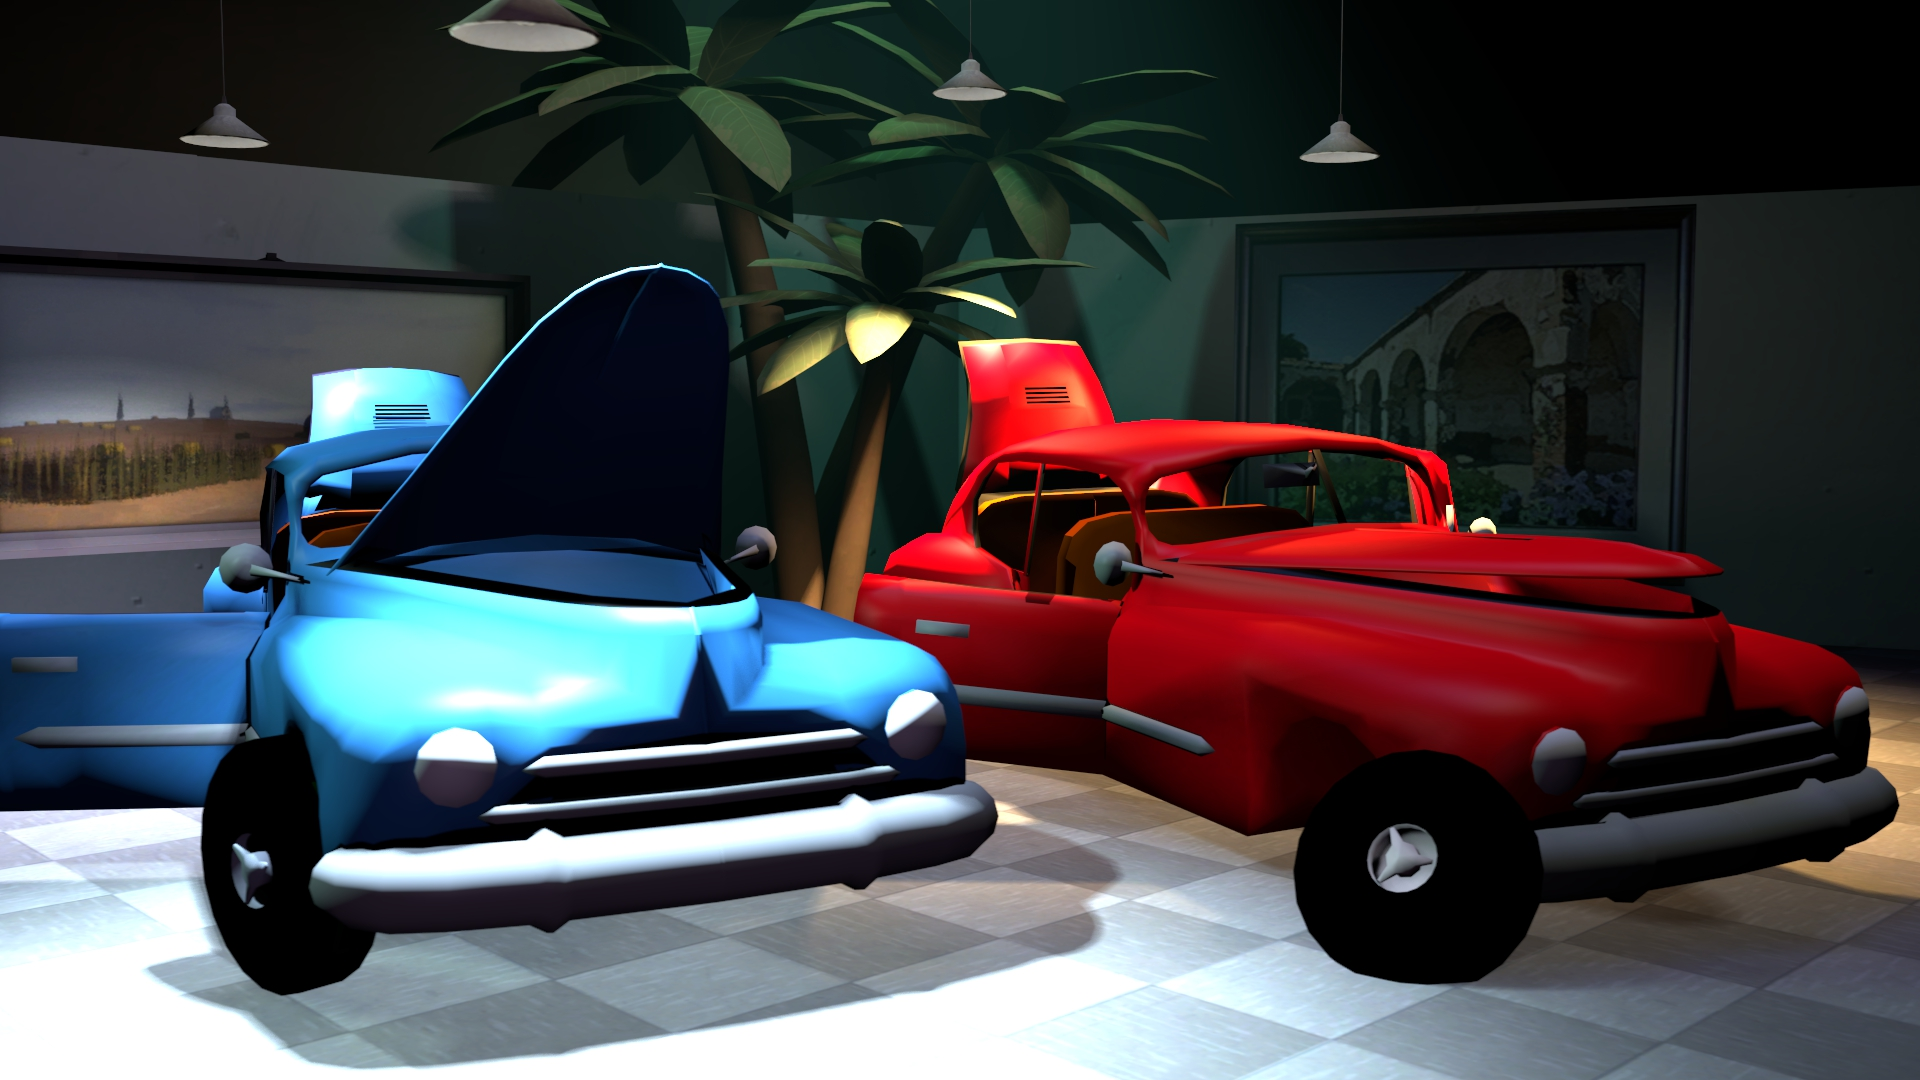 Old}[Download model / SFM] Rigged Classic Car by finalleet on DeviantArt